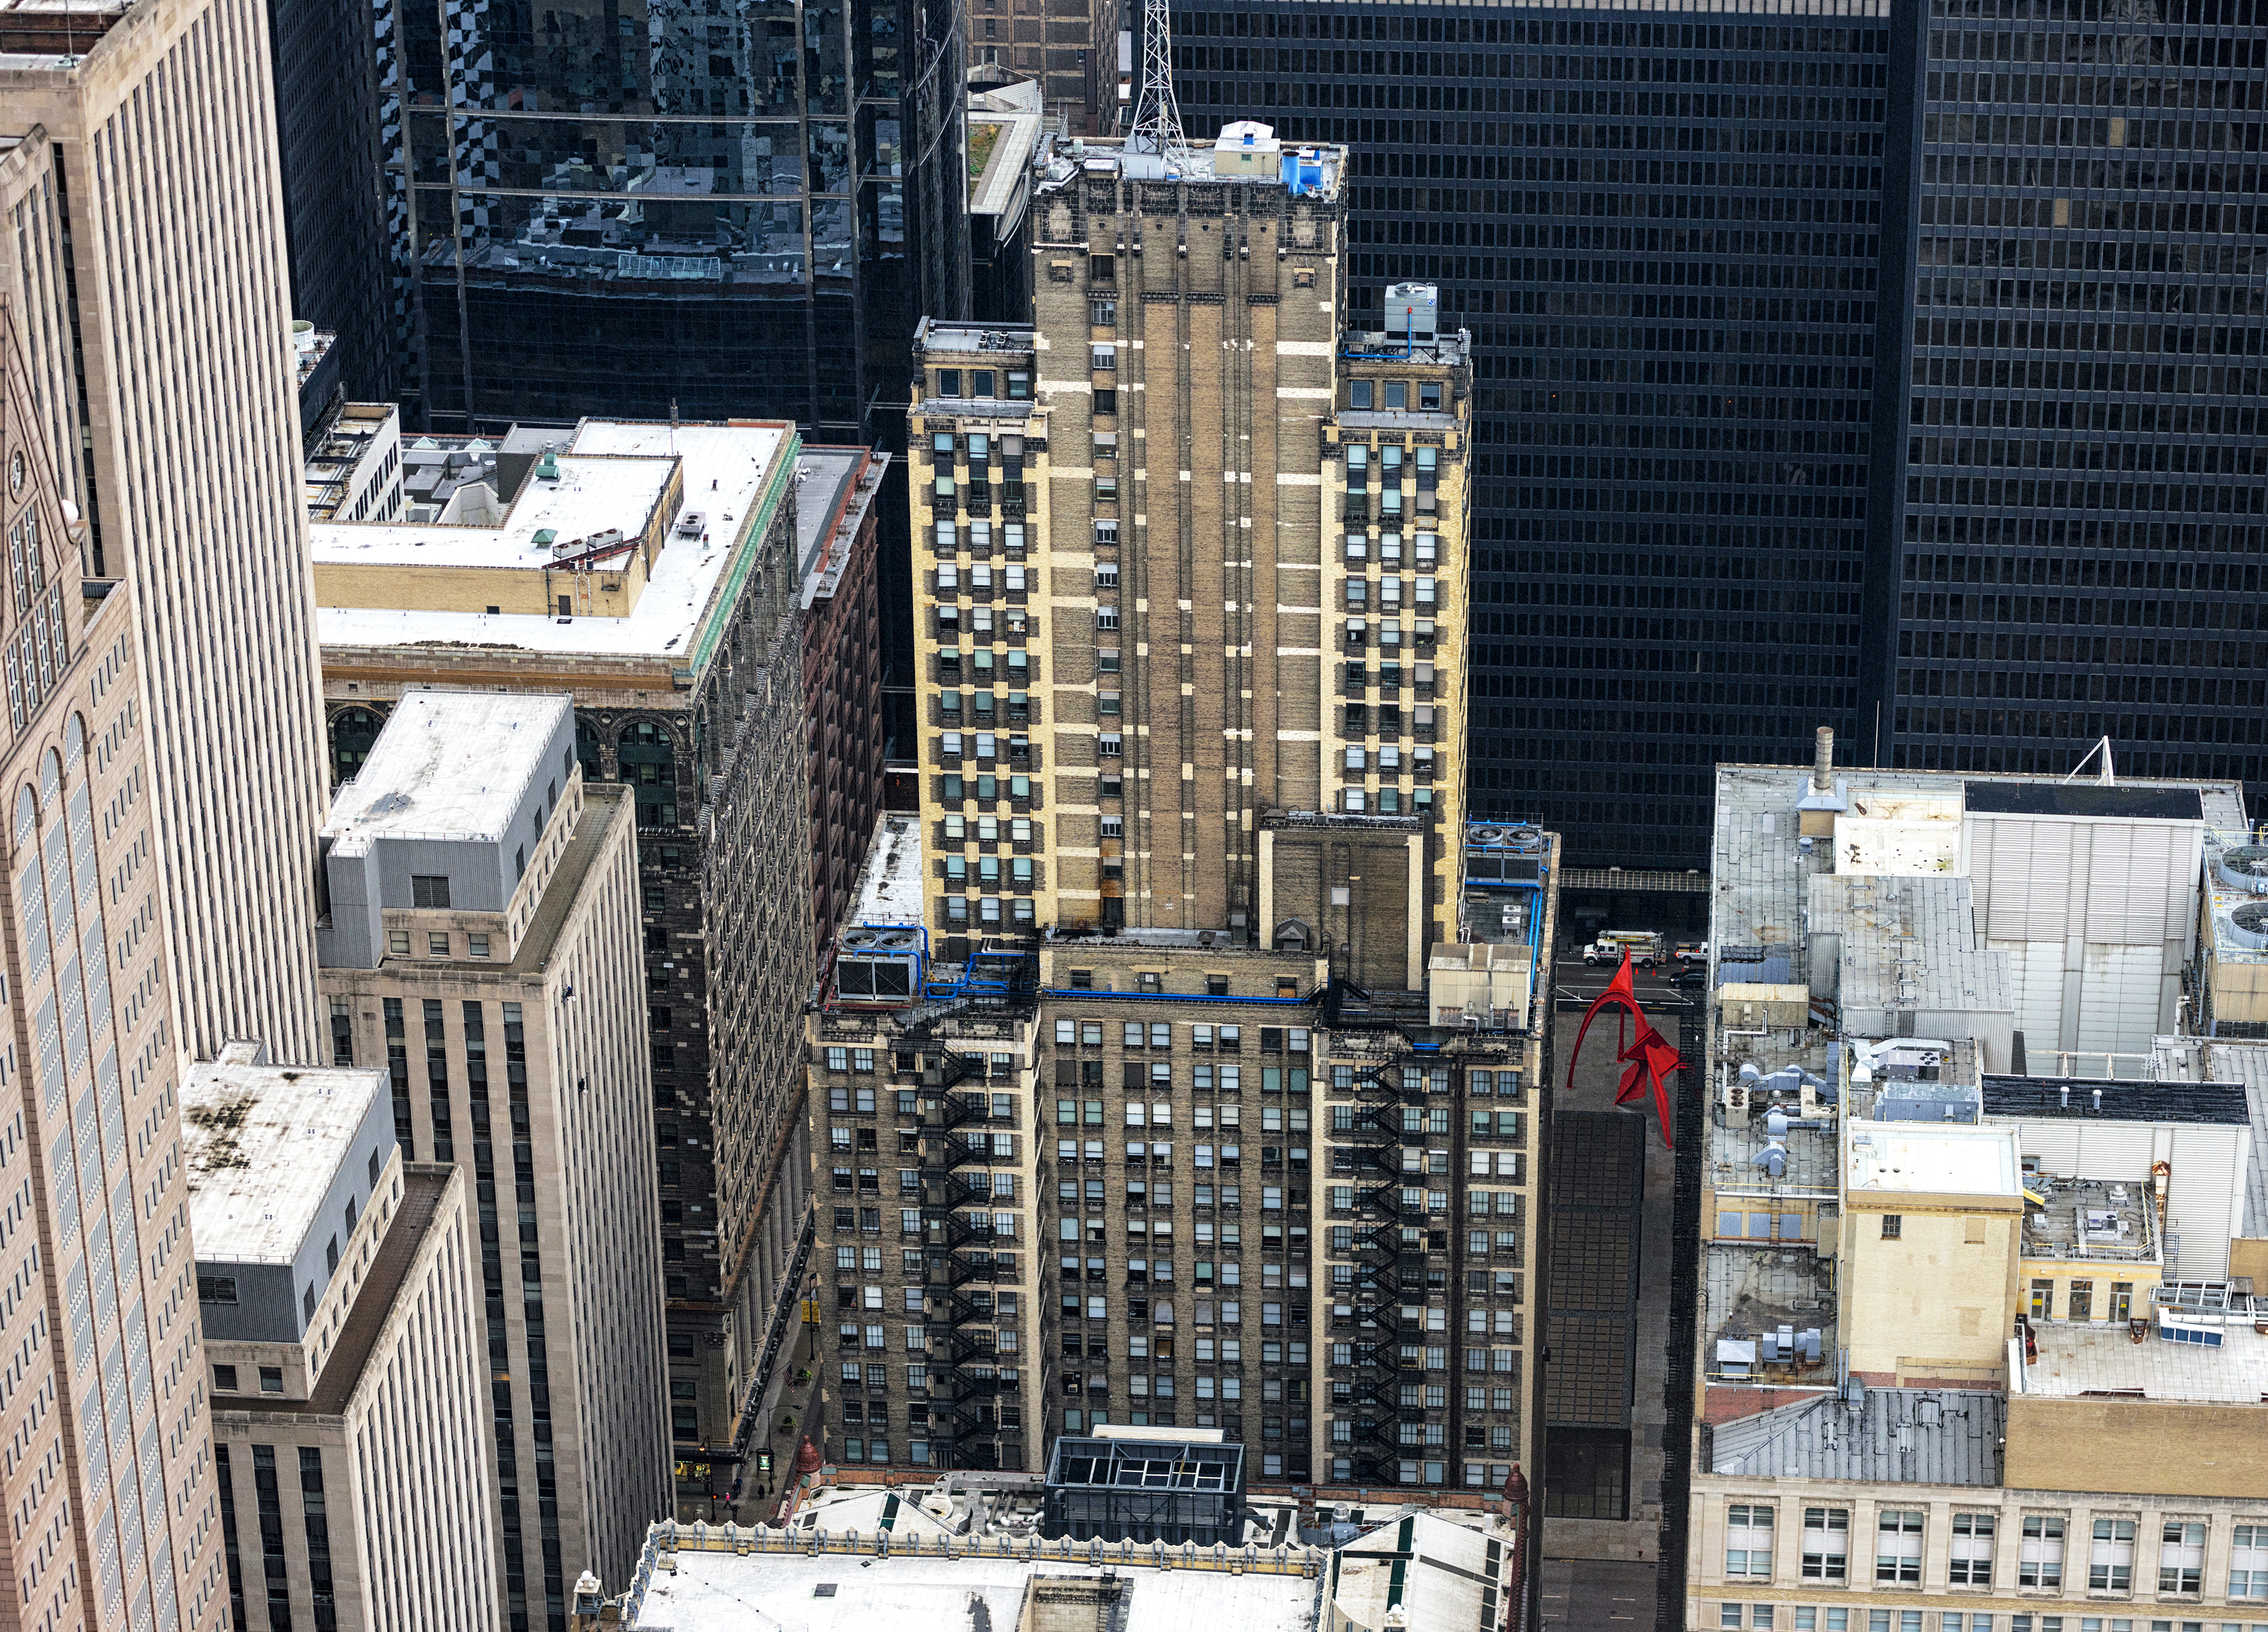 An aerial image of an 41-story office building with a mismatched brick exterior of beige and brown bricks. The building is surrounded by other tall high-rise buildings.